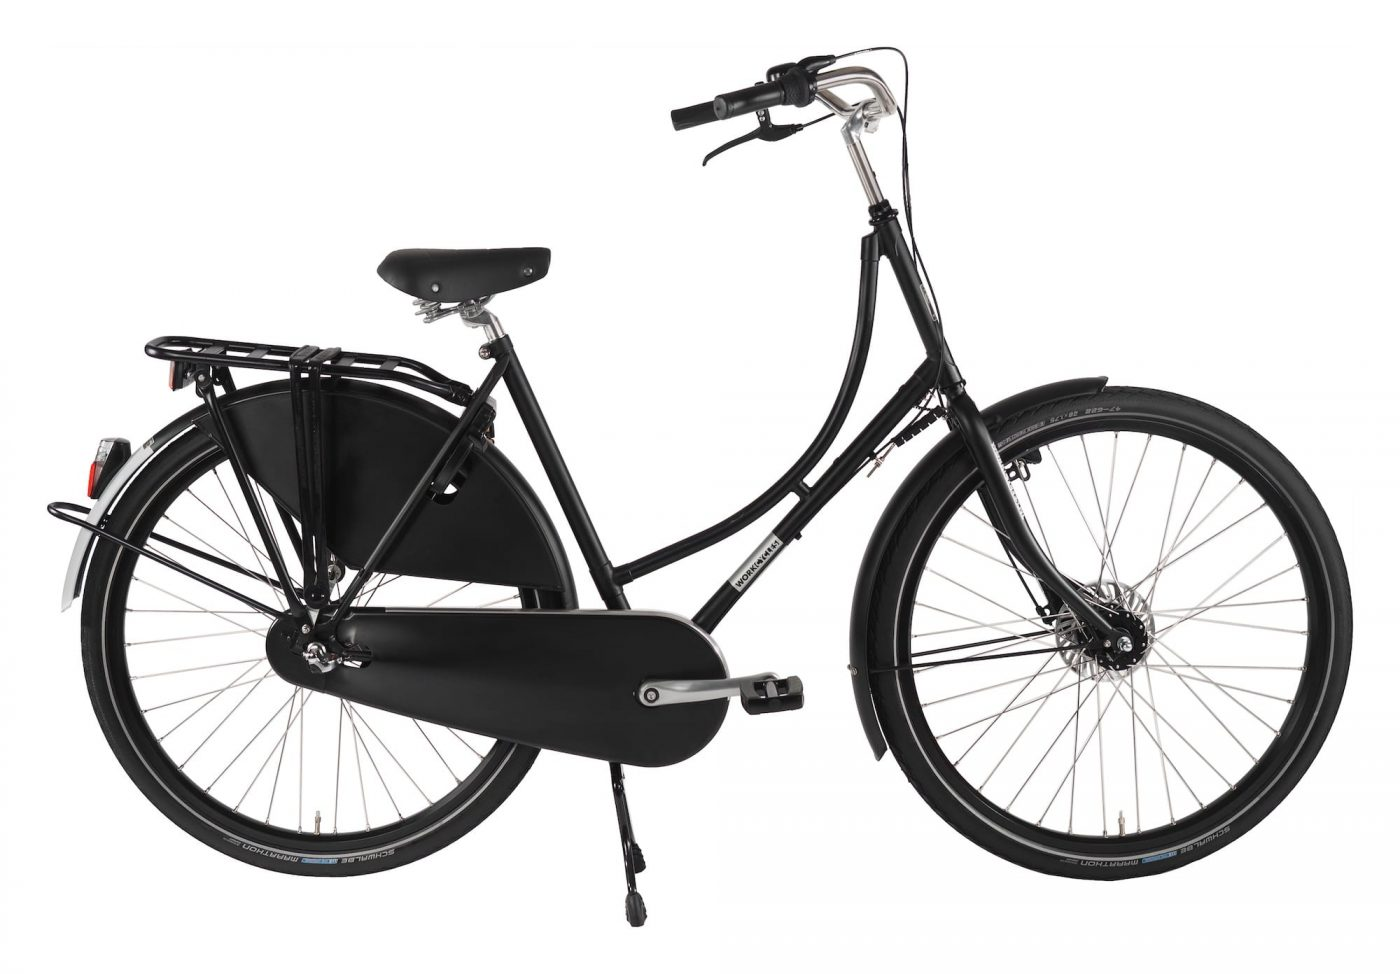 It's a smooth ride with pretty lines and a comfortable upright riding position. The Omafiets is a popular city bike amongst Dutch women (and men!) of all ages. This bike will never go out of style.